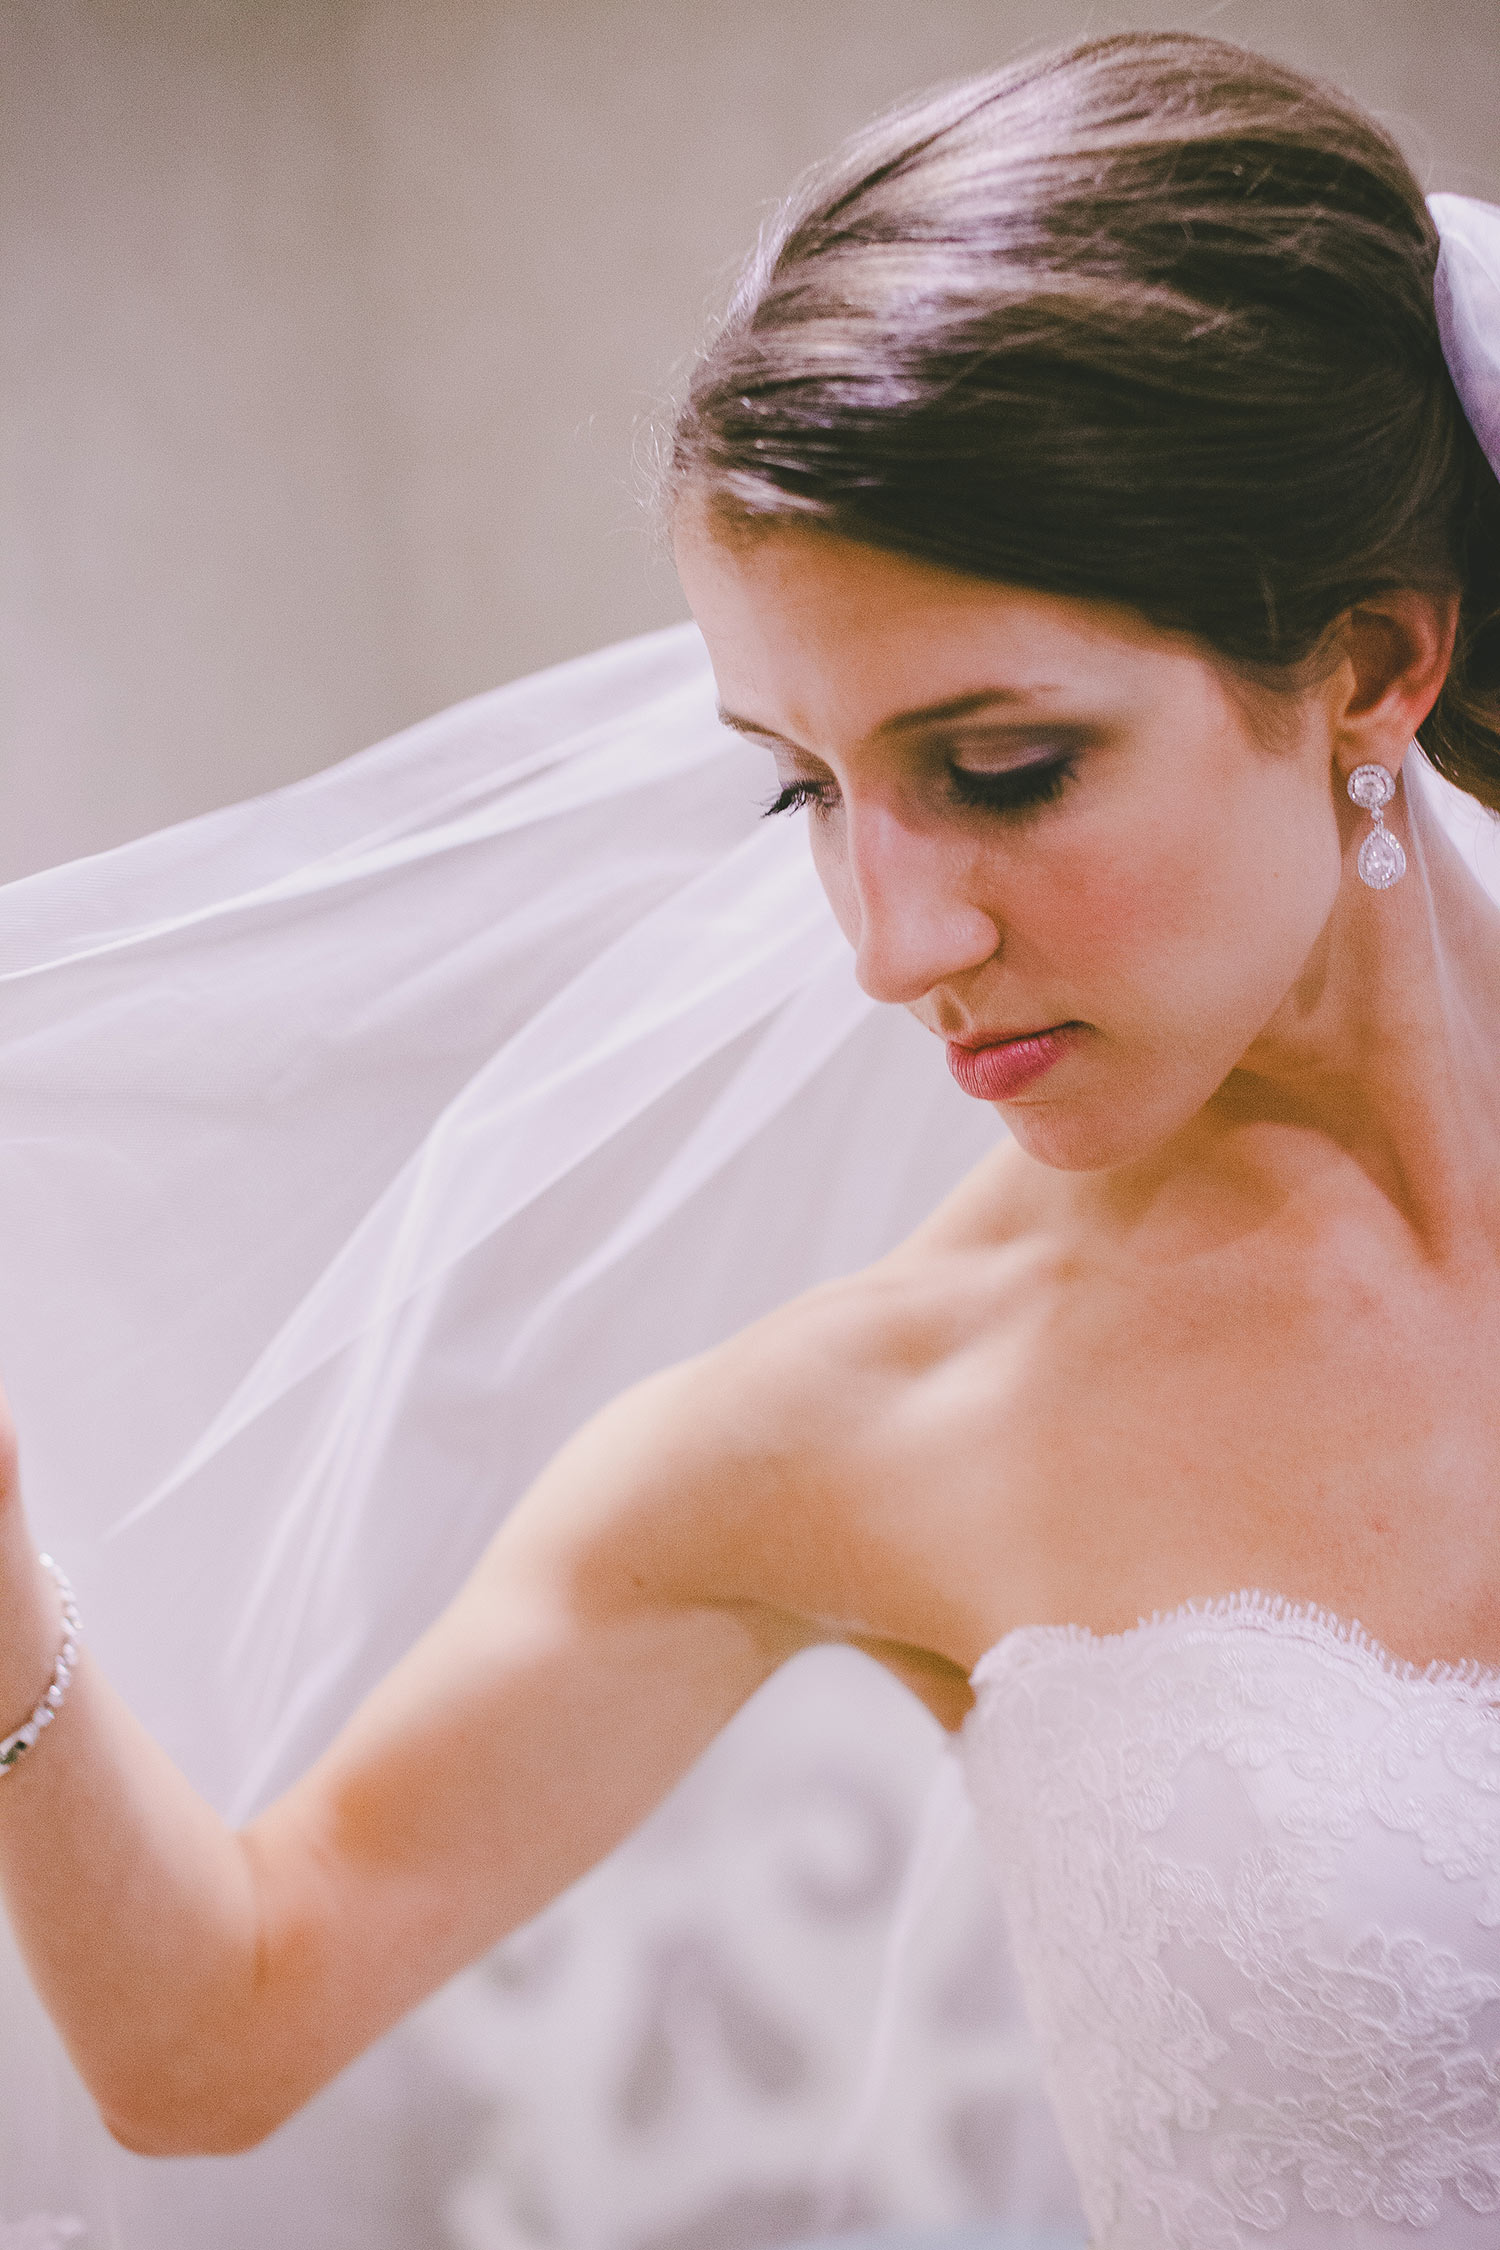 Bride with brown hair holding veil